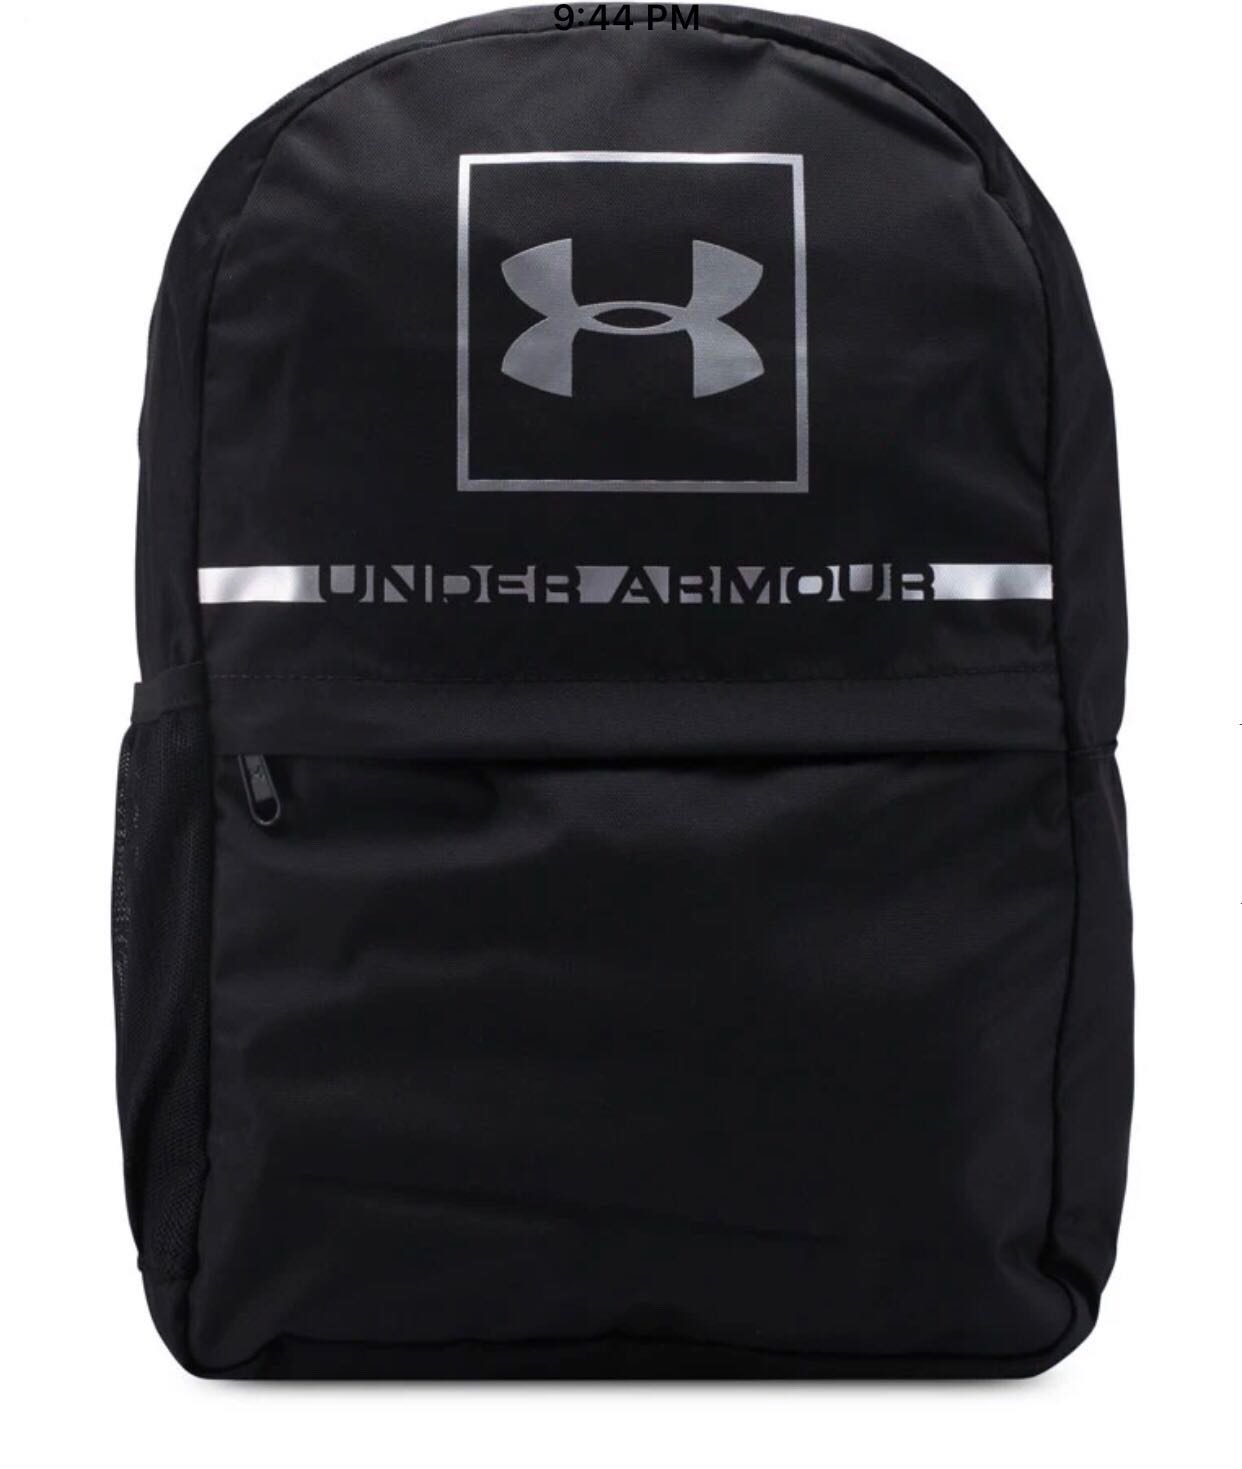 b210620f8c authentic Underarmour backpack